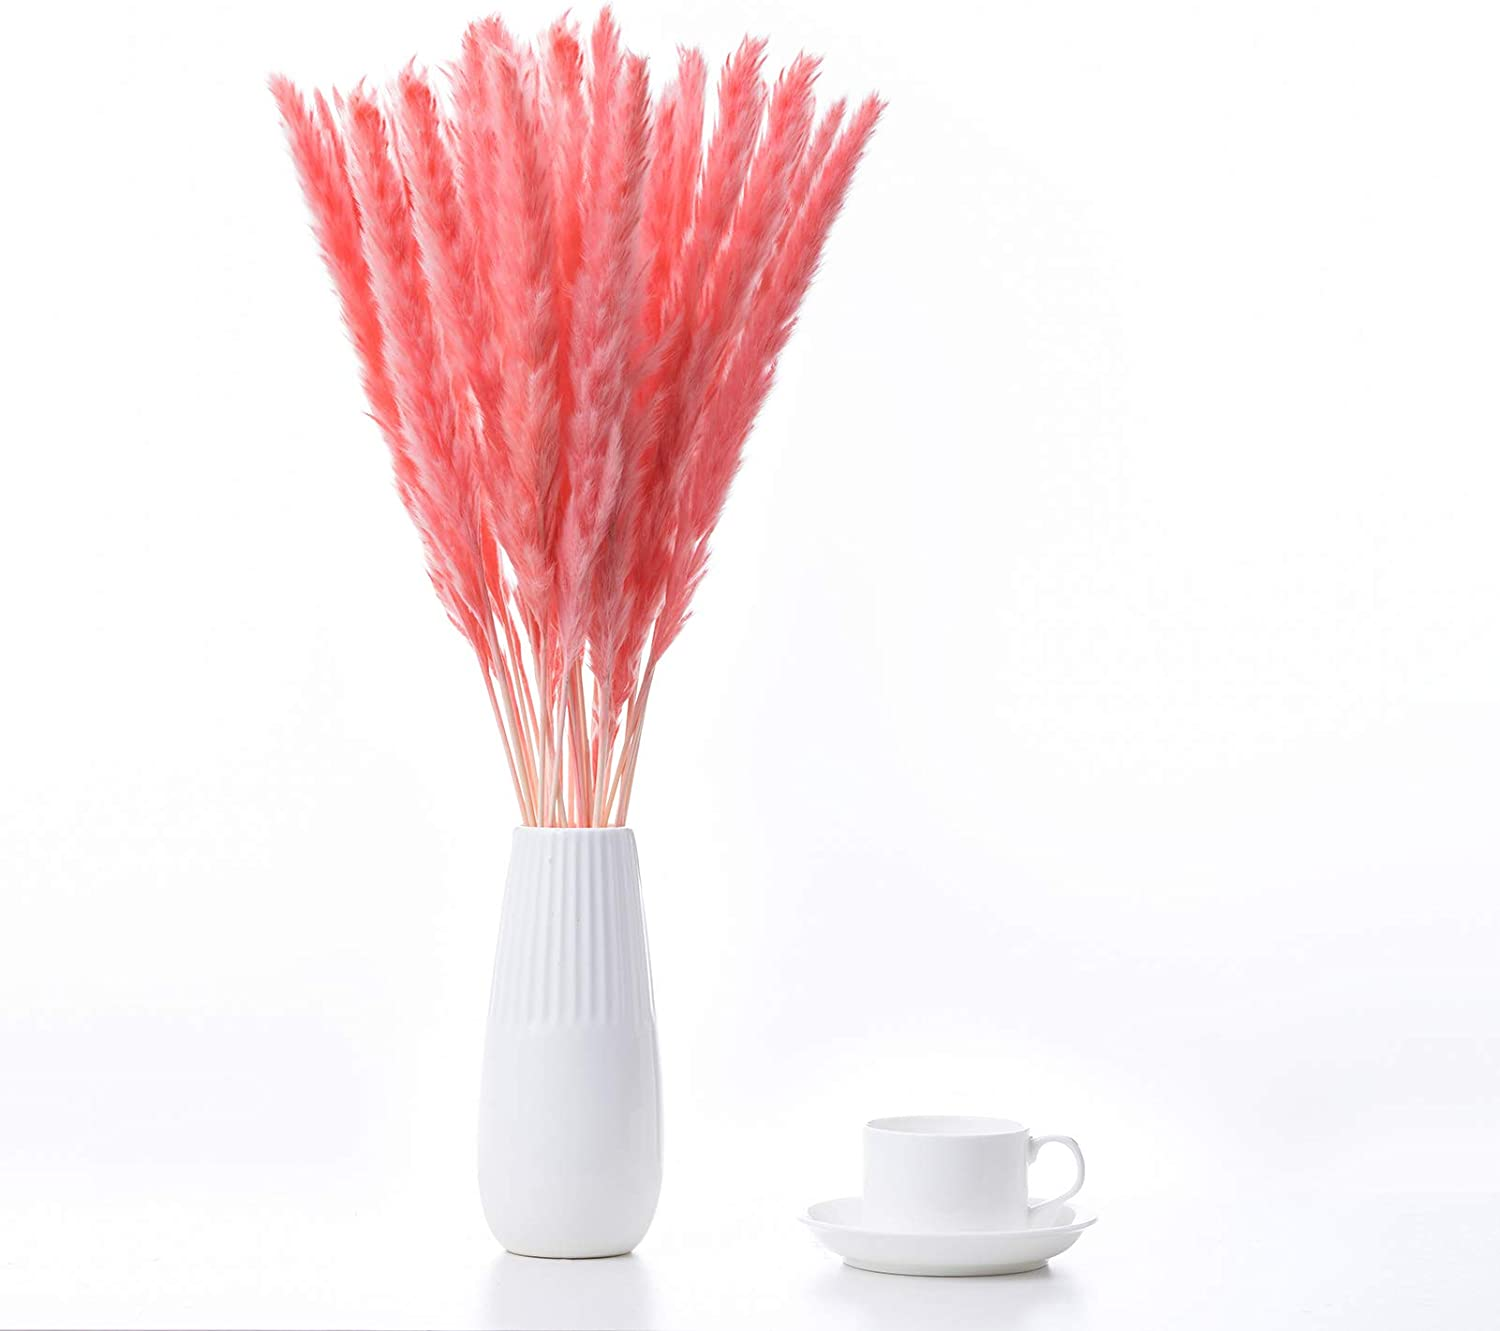 FOREST -V 40 Pcs Dried Pampas Grass,Pampas Grass Decor,Dried Grass,Dried Flower Artificial,Tall Pampas Grass,Pampas Grass Large, Natural White|Brown|Pink| pompous Grass,Arrangement Vase Decor(45CM)